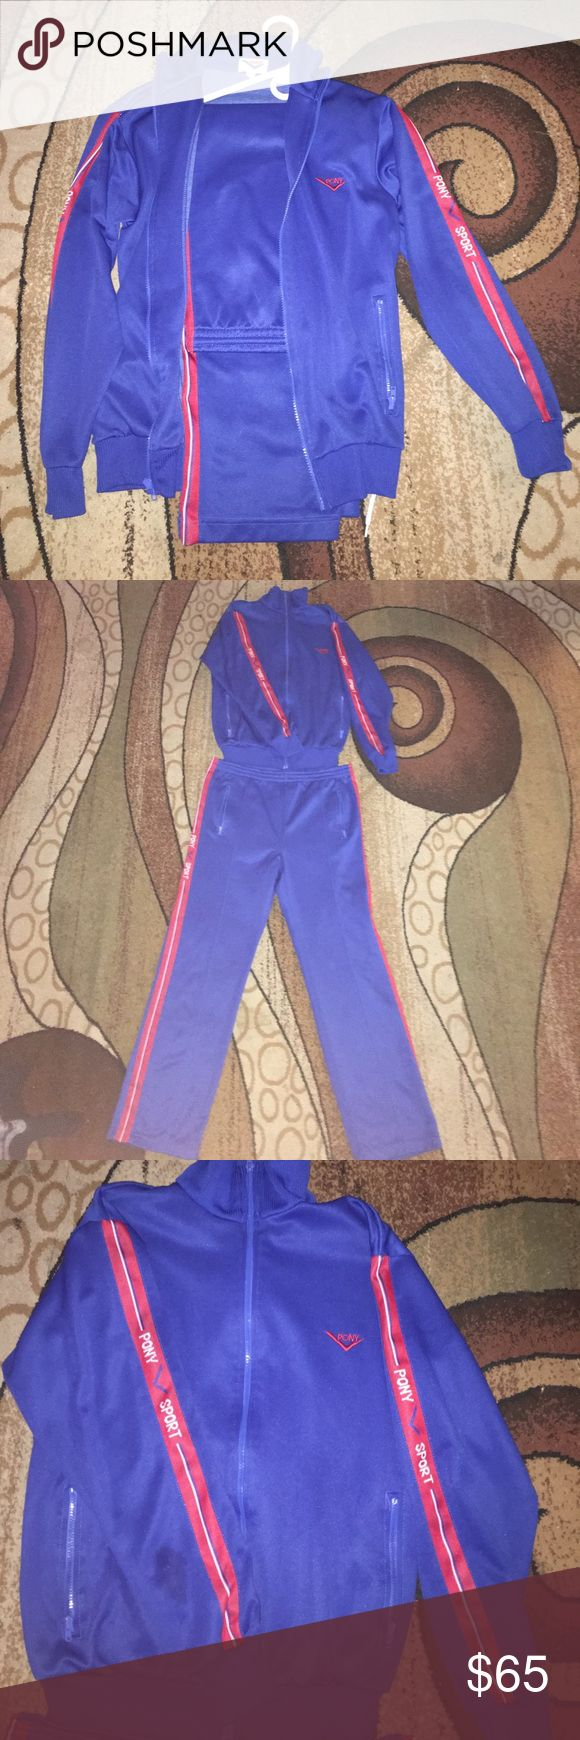 Vintage Pony Tracksuit Top & Bottom Vintage Mid 80s Pony Sport Tracksuit Top & Bottom. Great condition. Size S and fits true to size.  PLEASE remember. These are authentic vintage pieces so of course there's some normal wear and tear, but nothing noticeable. Thanks for stopping by, and may the force be with you. Pony Other